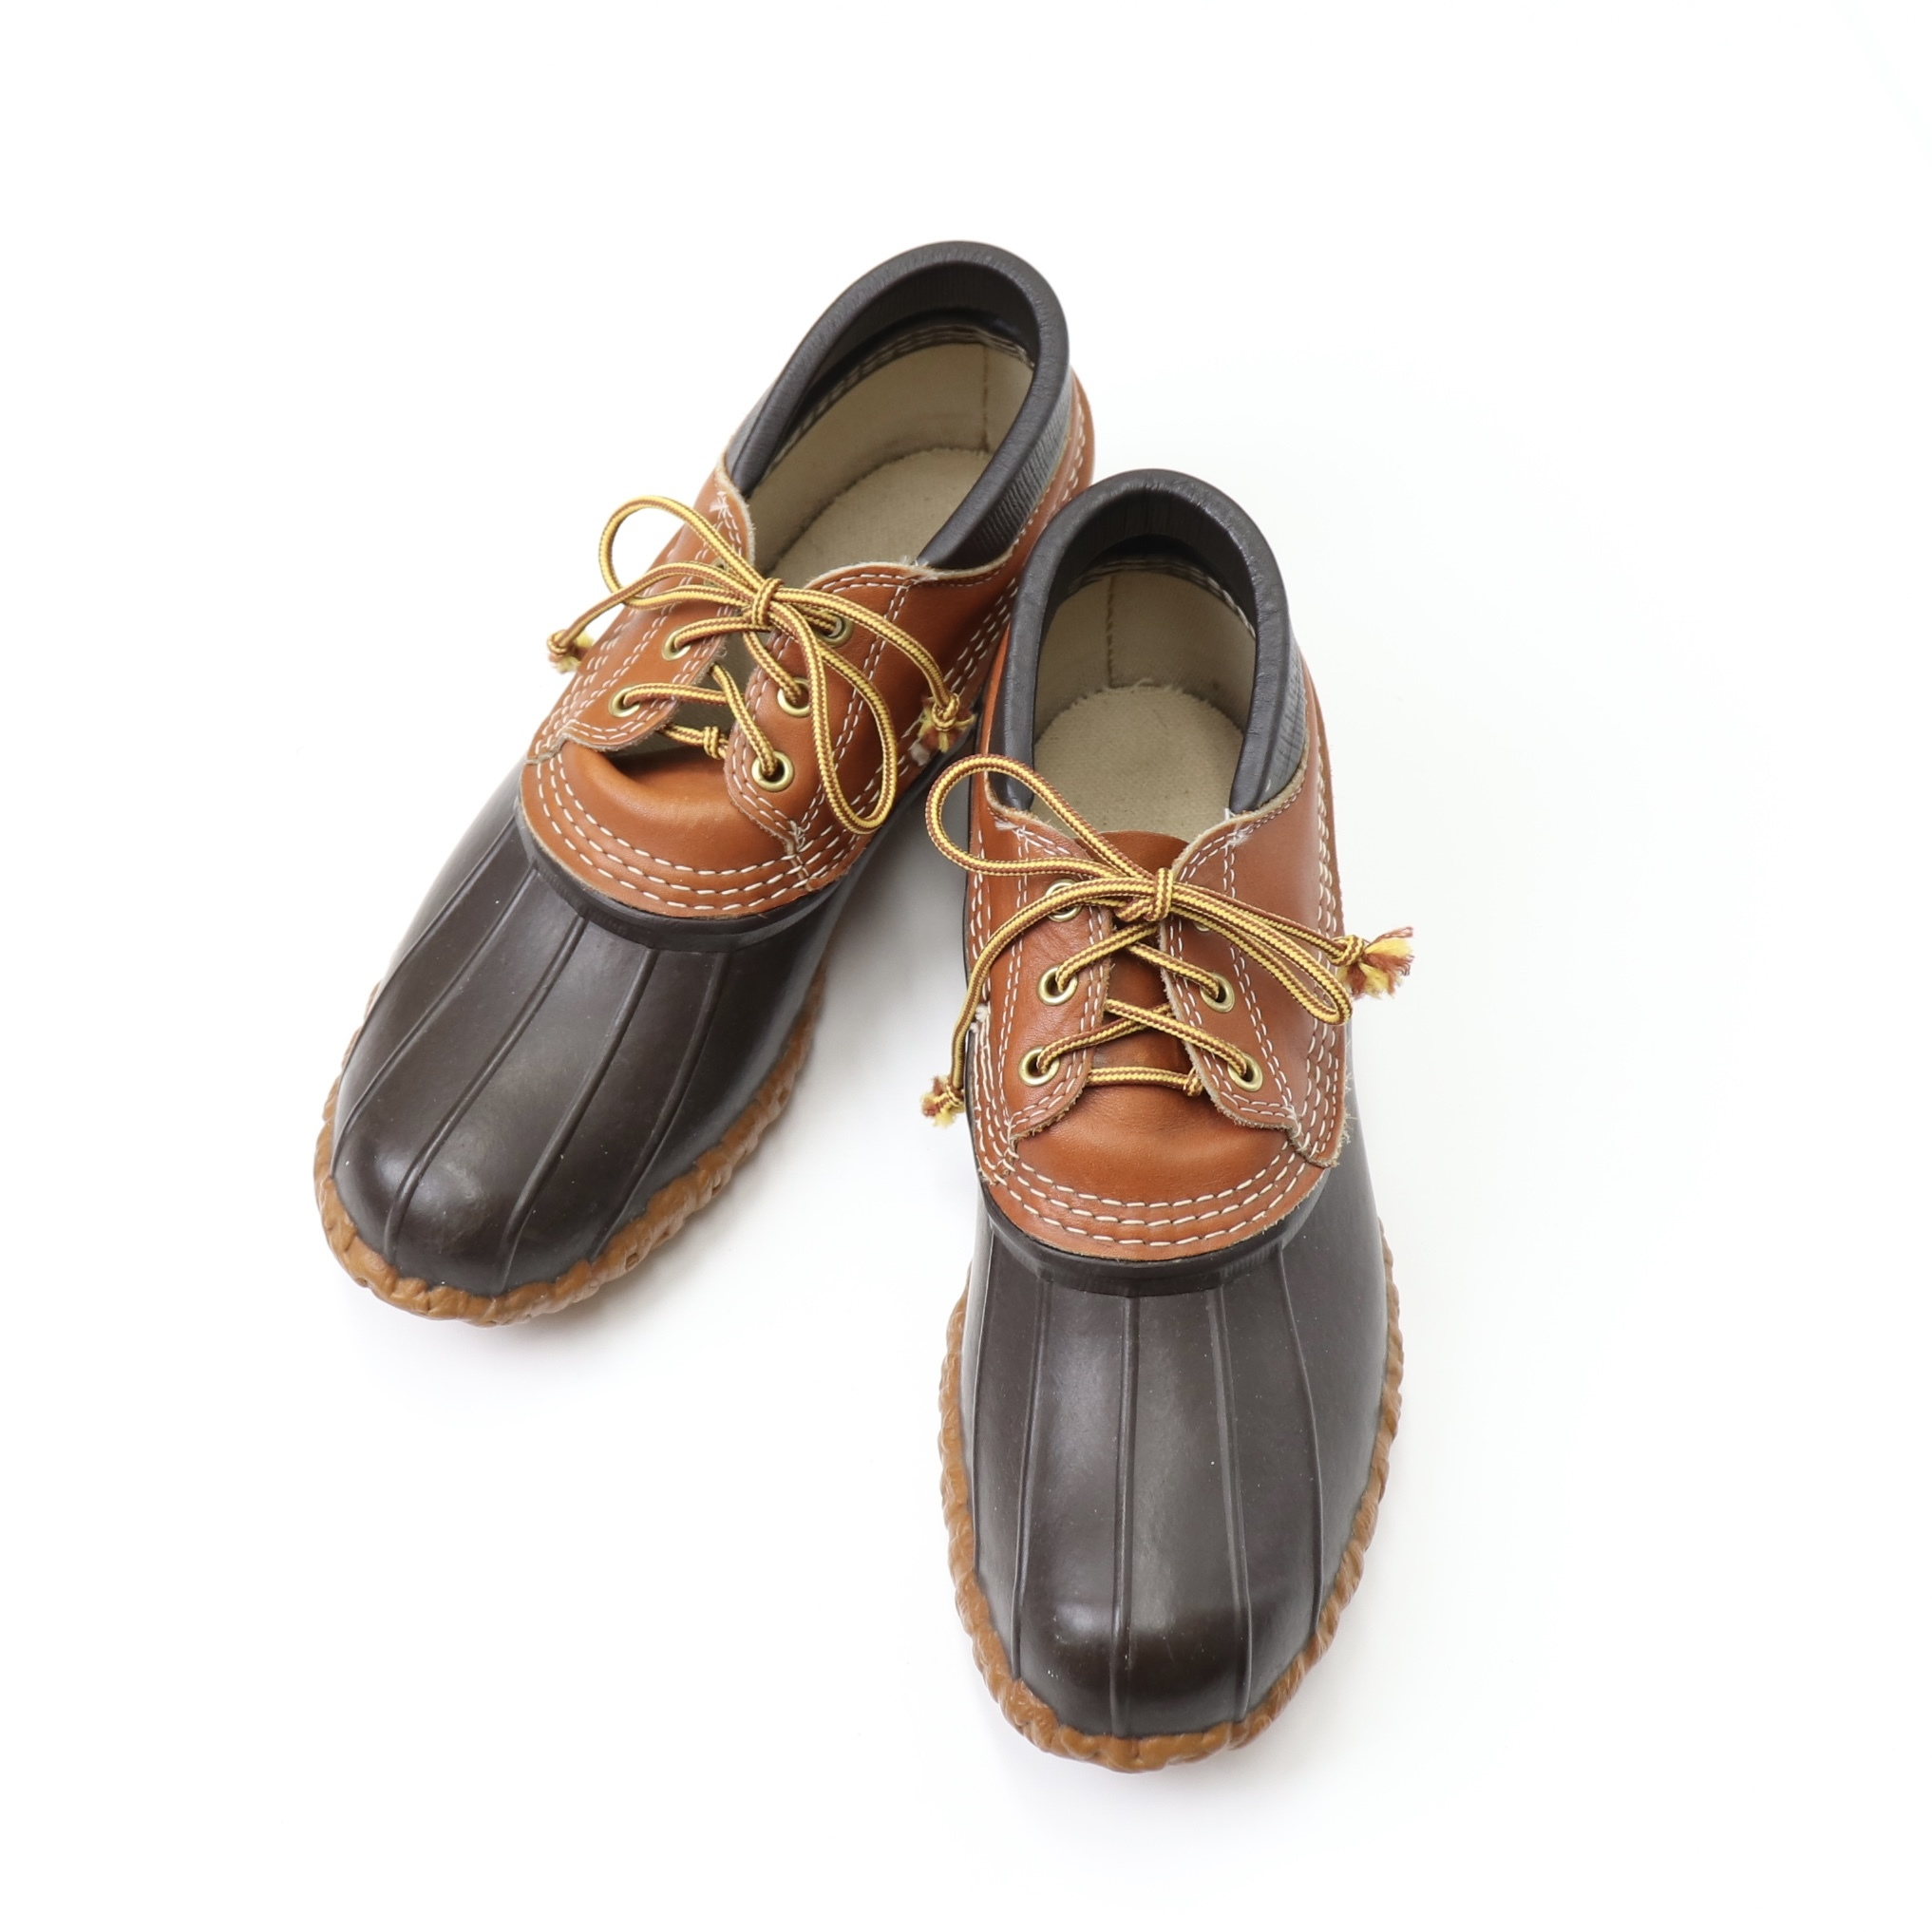 """"""" L.L.Bean """"  Bean  Boots   9M  Made in USA    エルエルビーン ビーンブーツ アメリカ製 9M A684"""